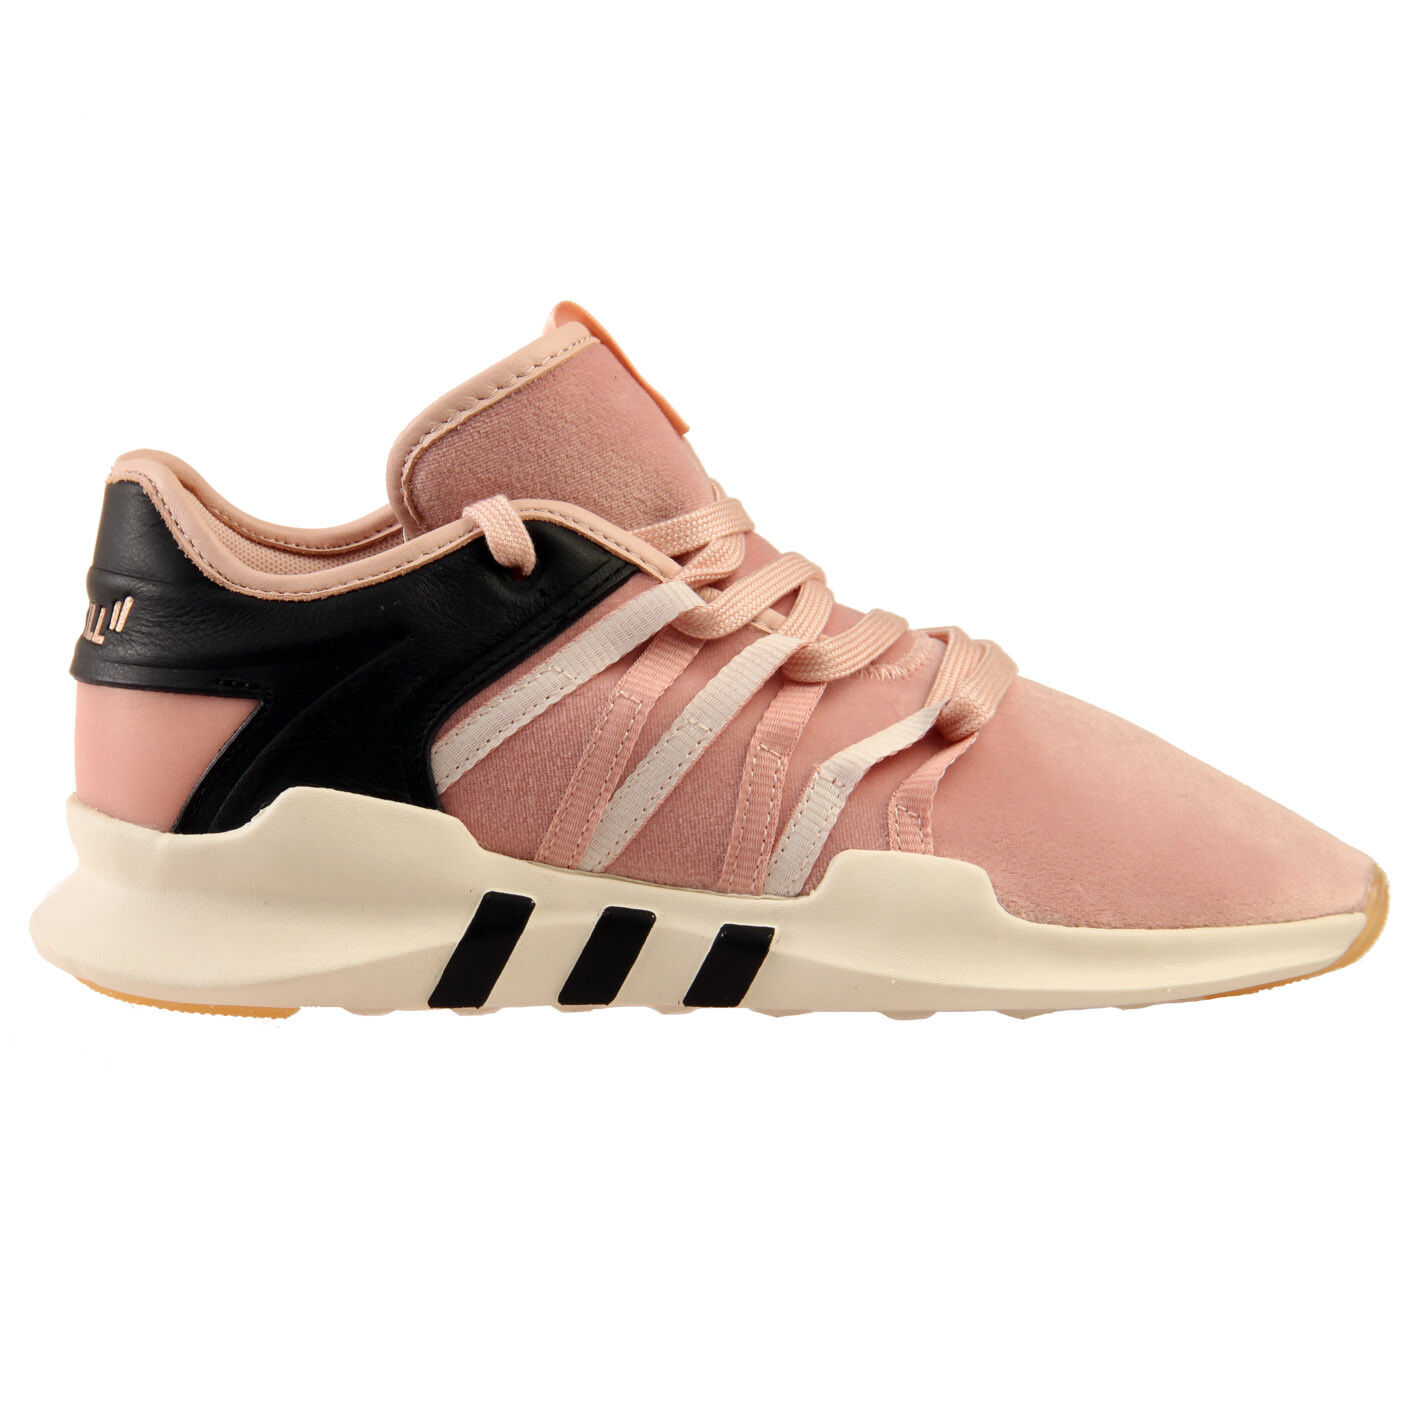 Adidas EQT Lacing ADV S.E Overkill x Fruition Womens CM7998 Pink shoes Size 6.5